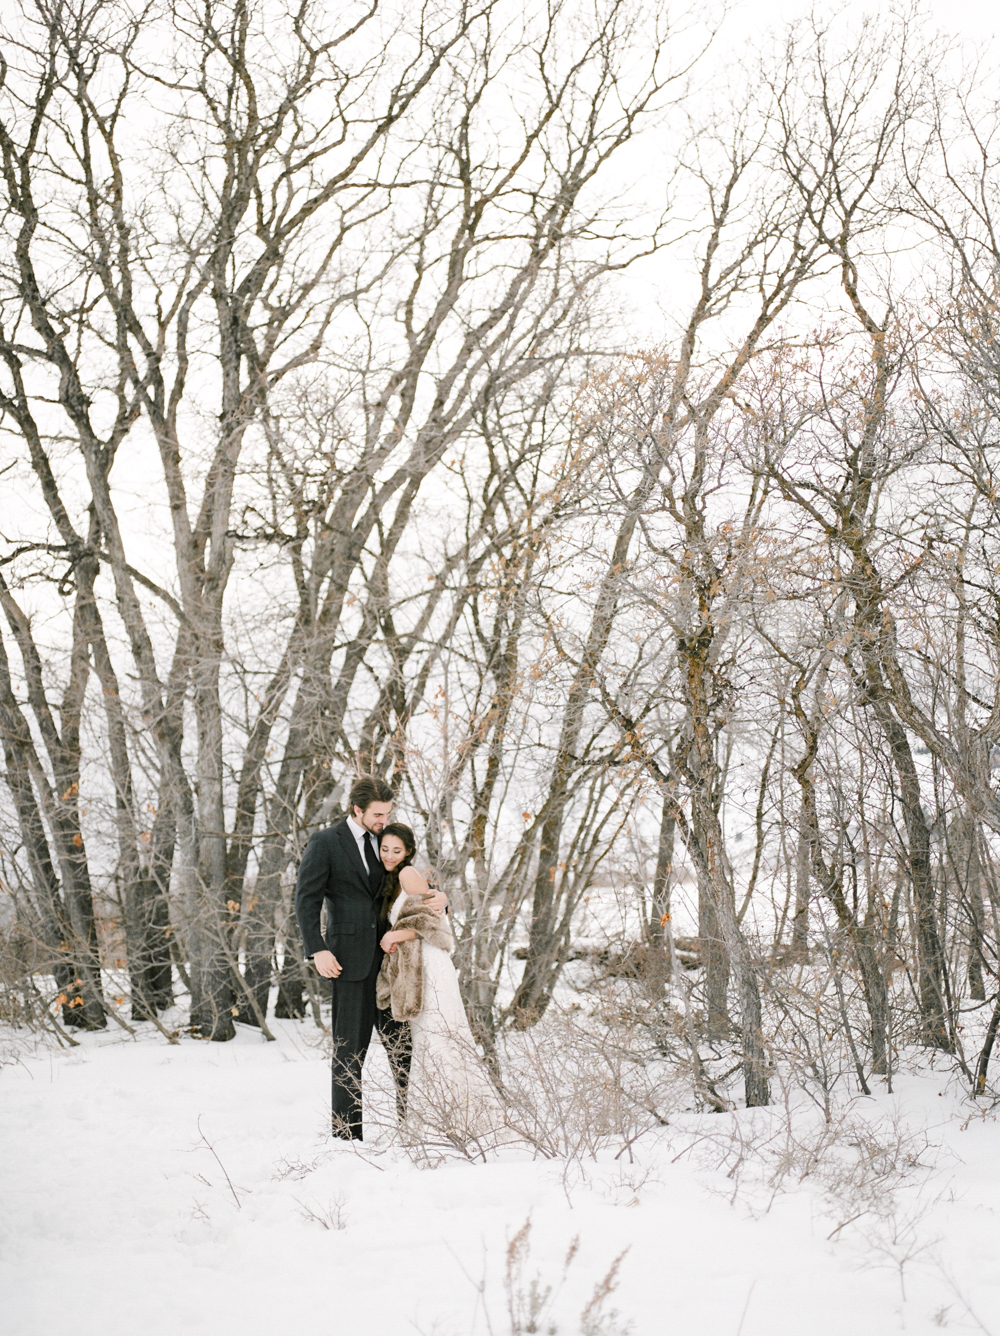 Christine-Gosch-Utah-film-photographer-wedding-mountains-snow-snowy-destination-8.jpg